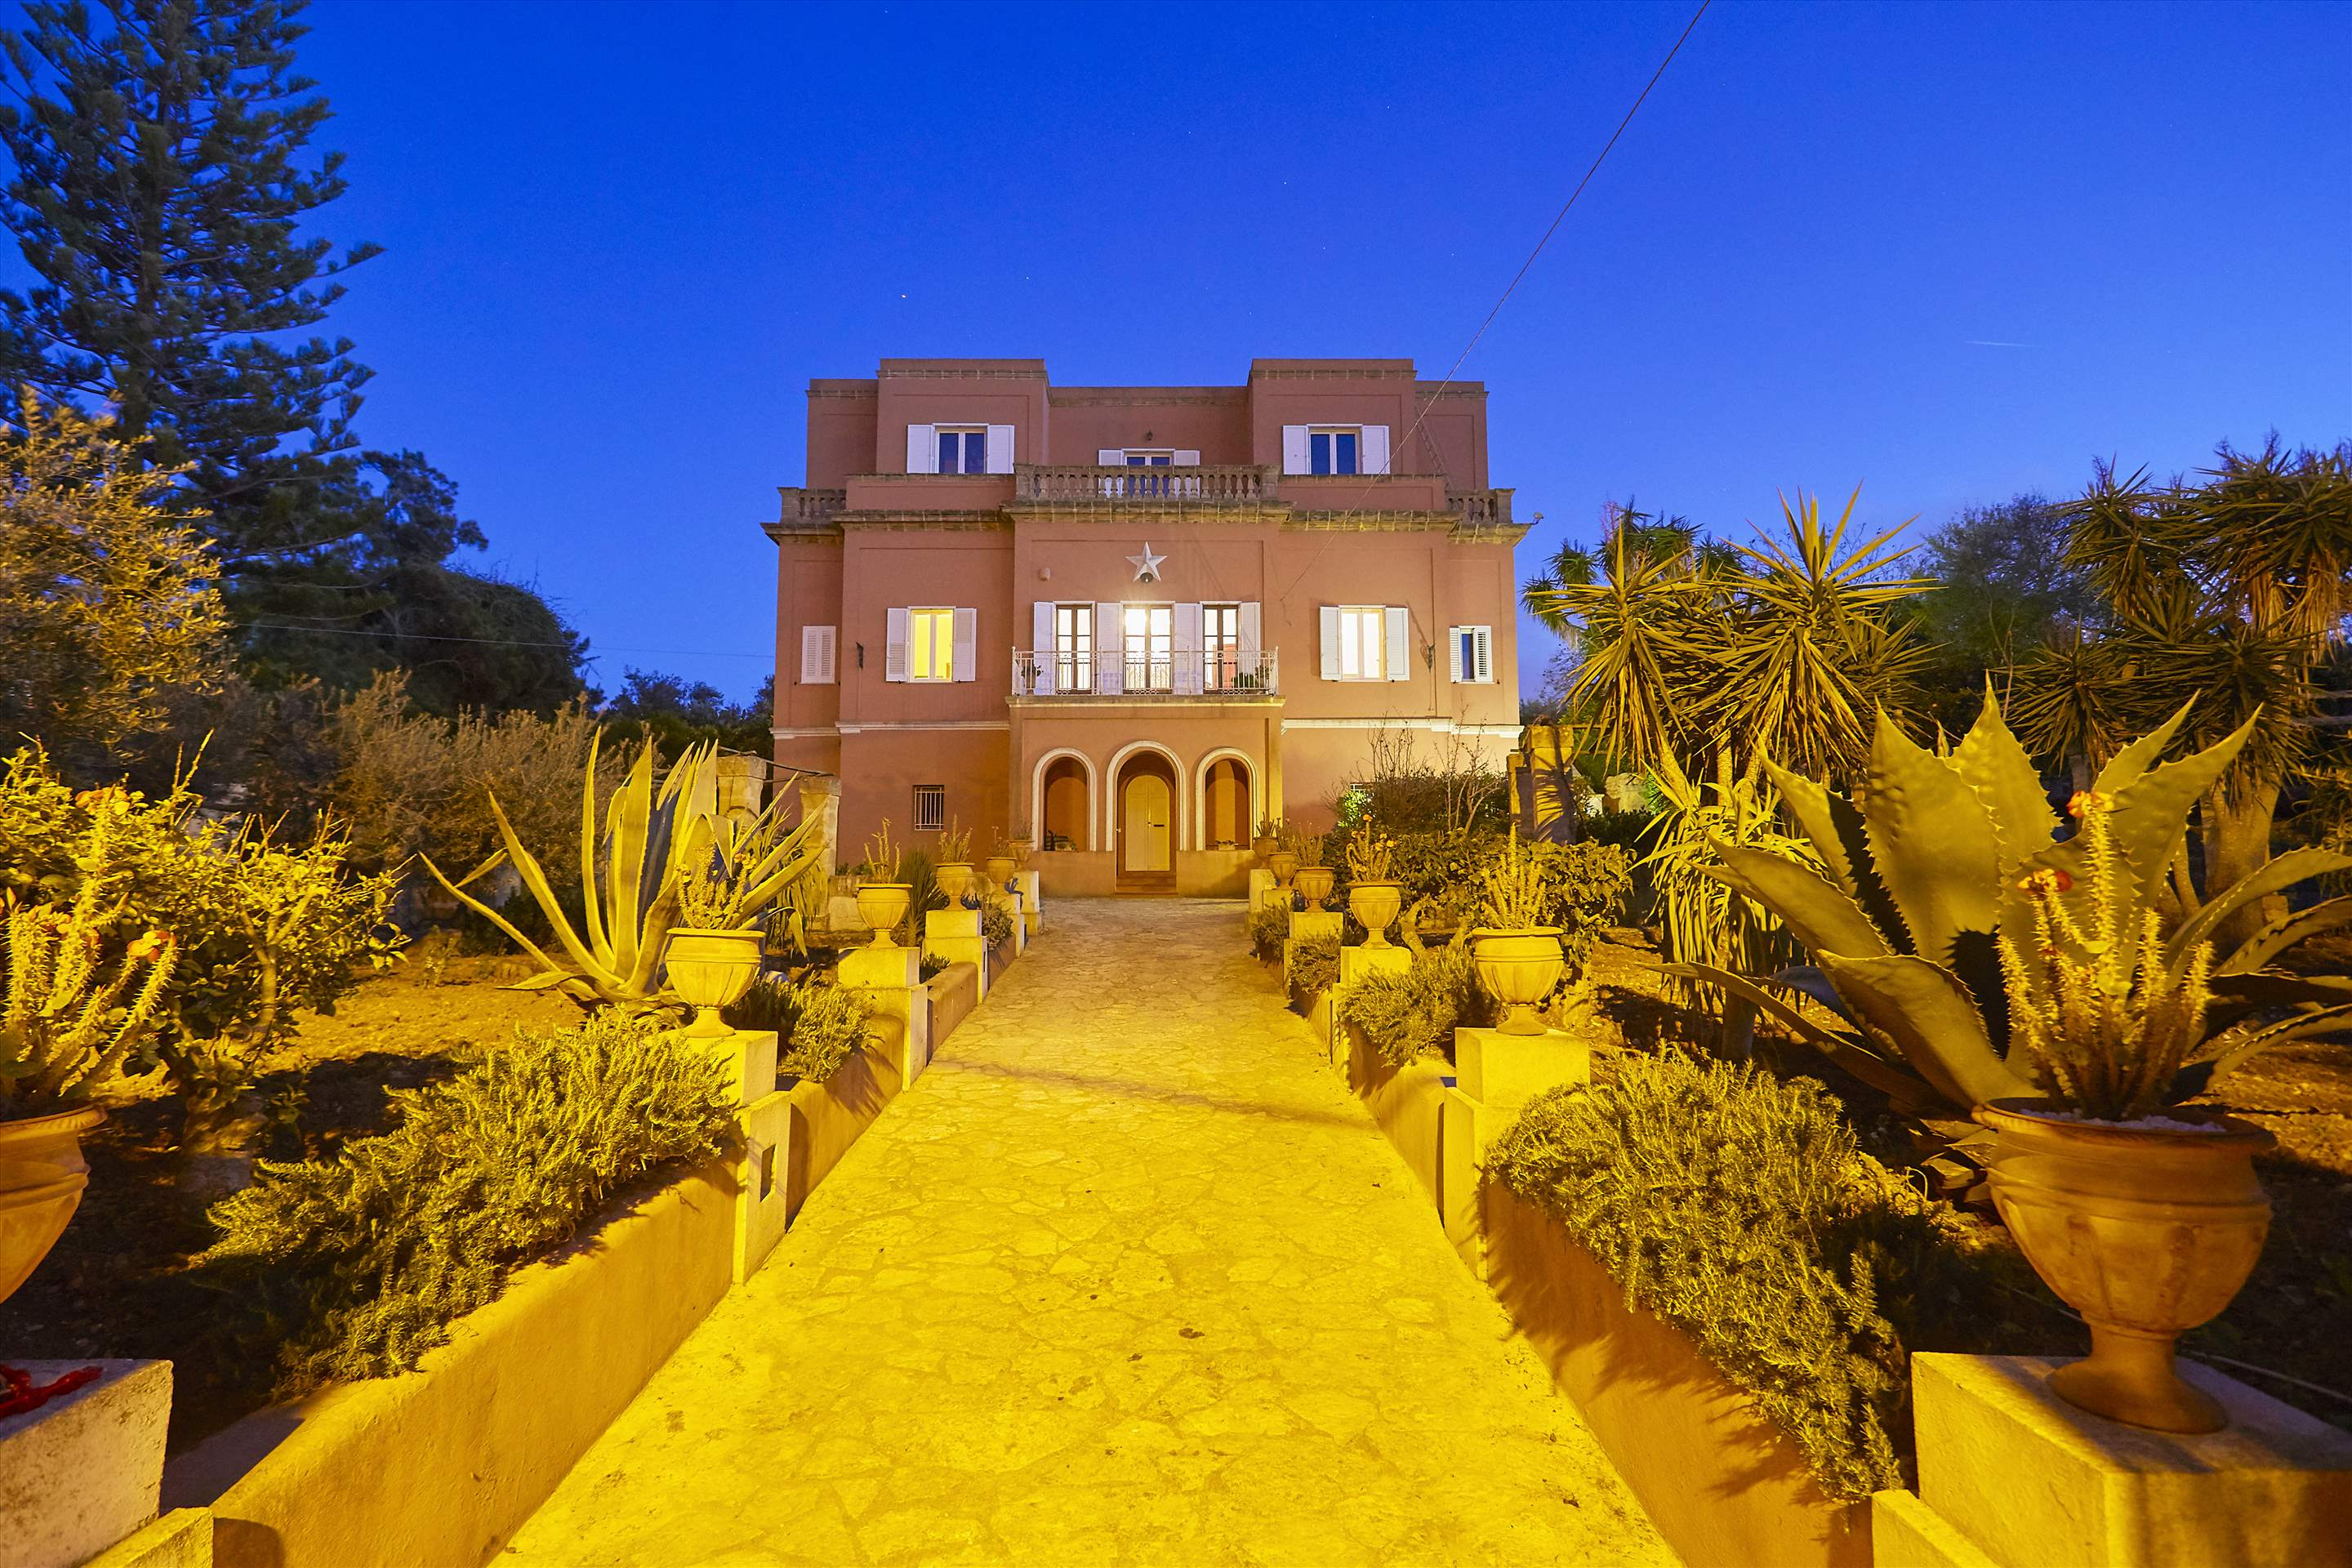 Villa Maria, 4 bedroom villa in Western Sicily, Sicily Photo #8